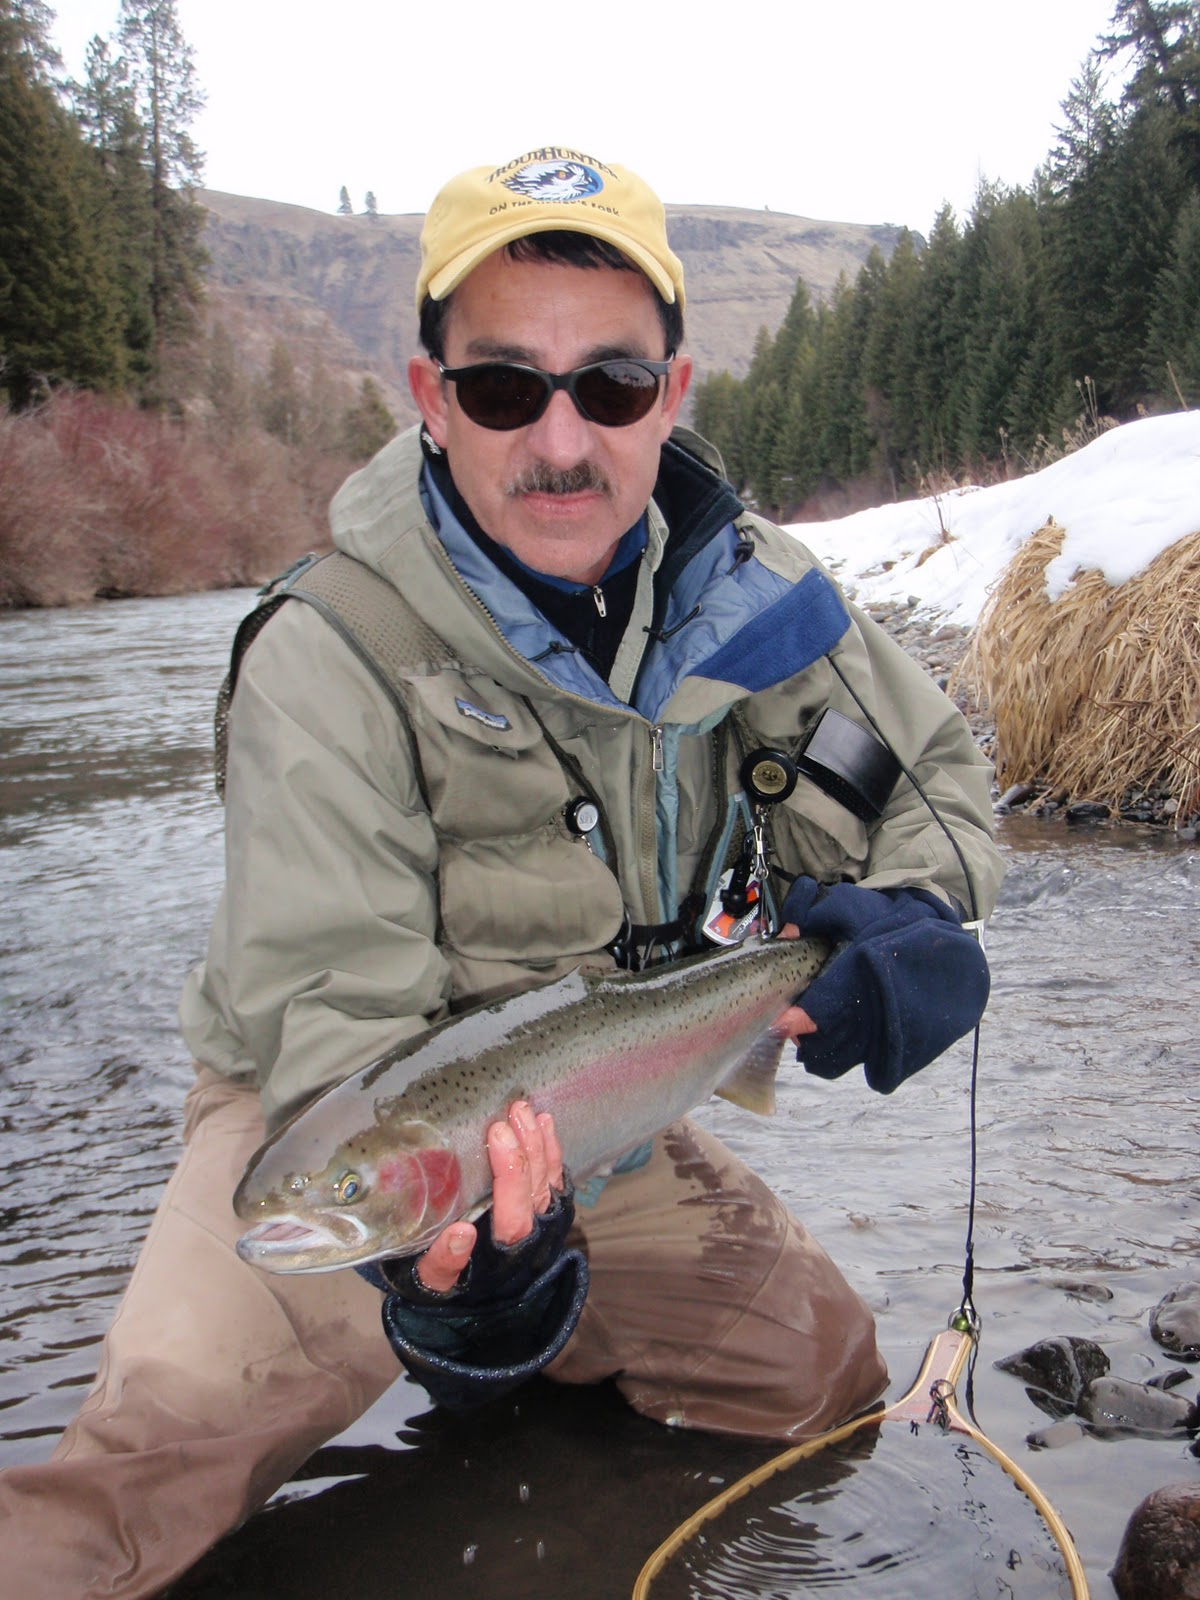 Fly fishing adventures steelheading on the wallowa river for Oregon steelhead fishing